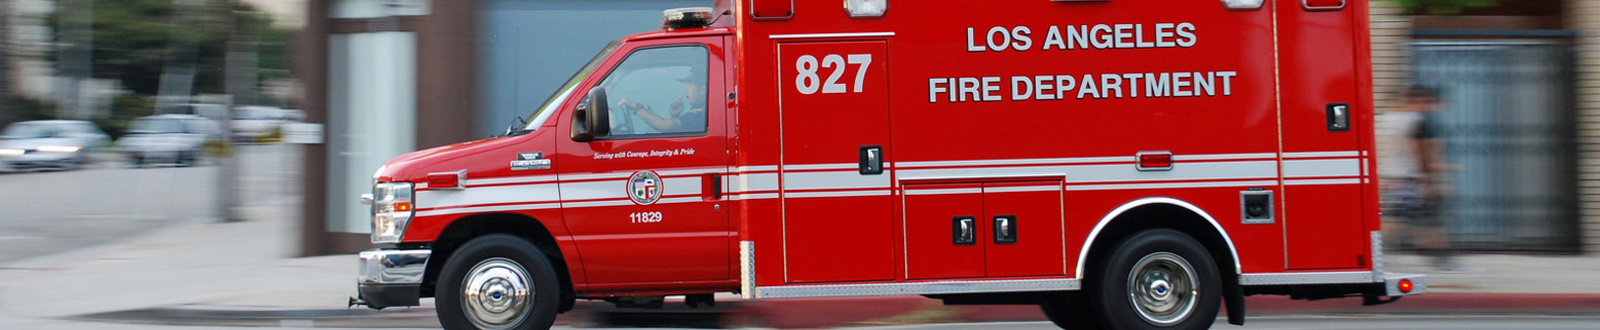 City Of Los Angeles Parking Violation >> EMS Billing & Medical Records | Los Angeles Fire Department